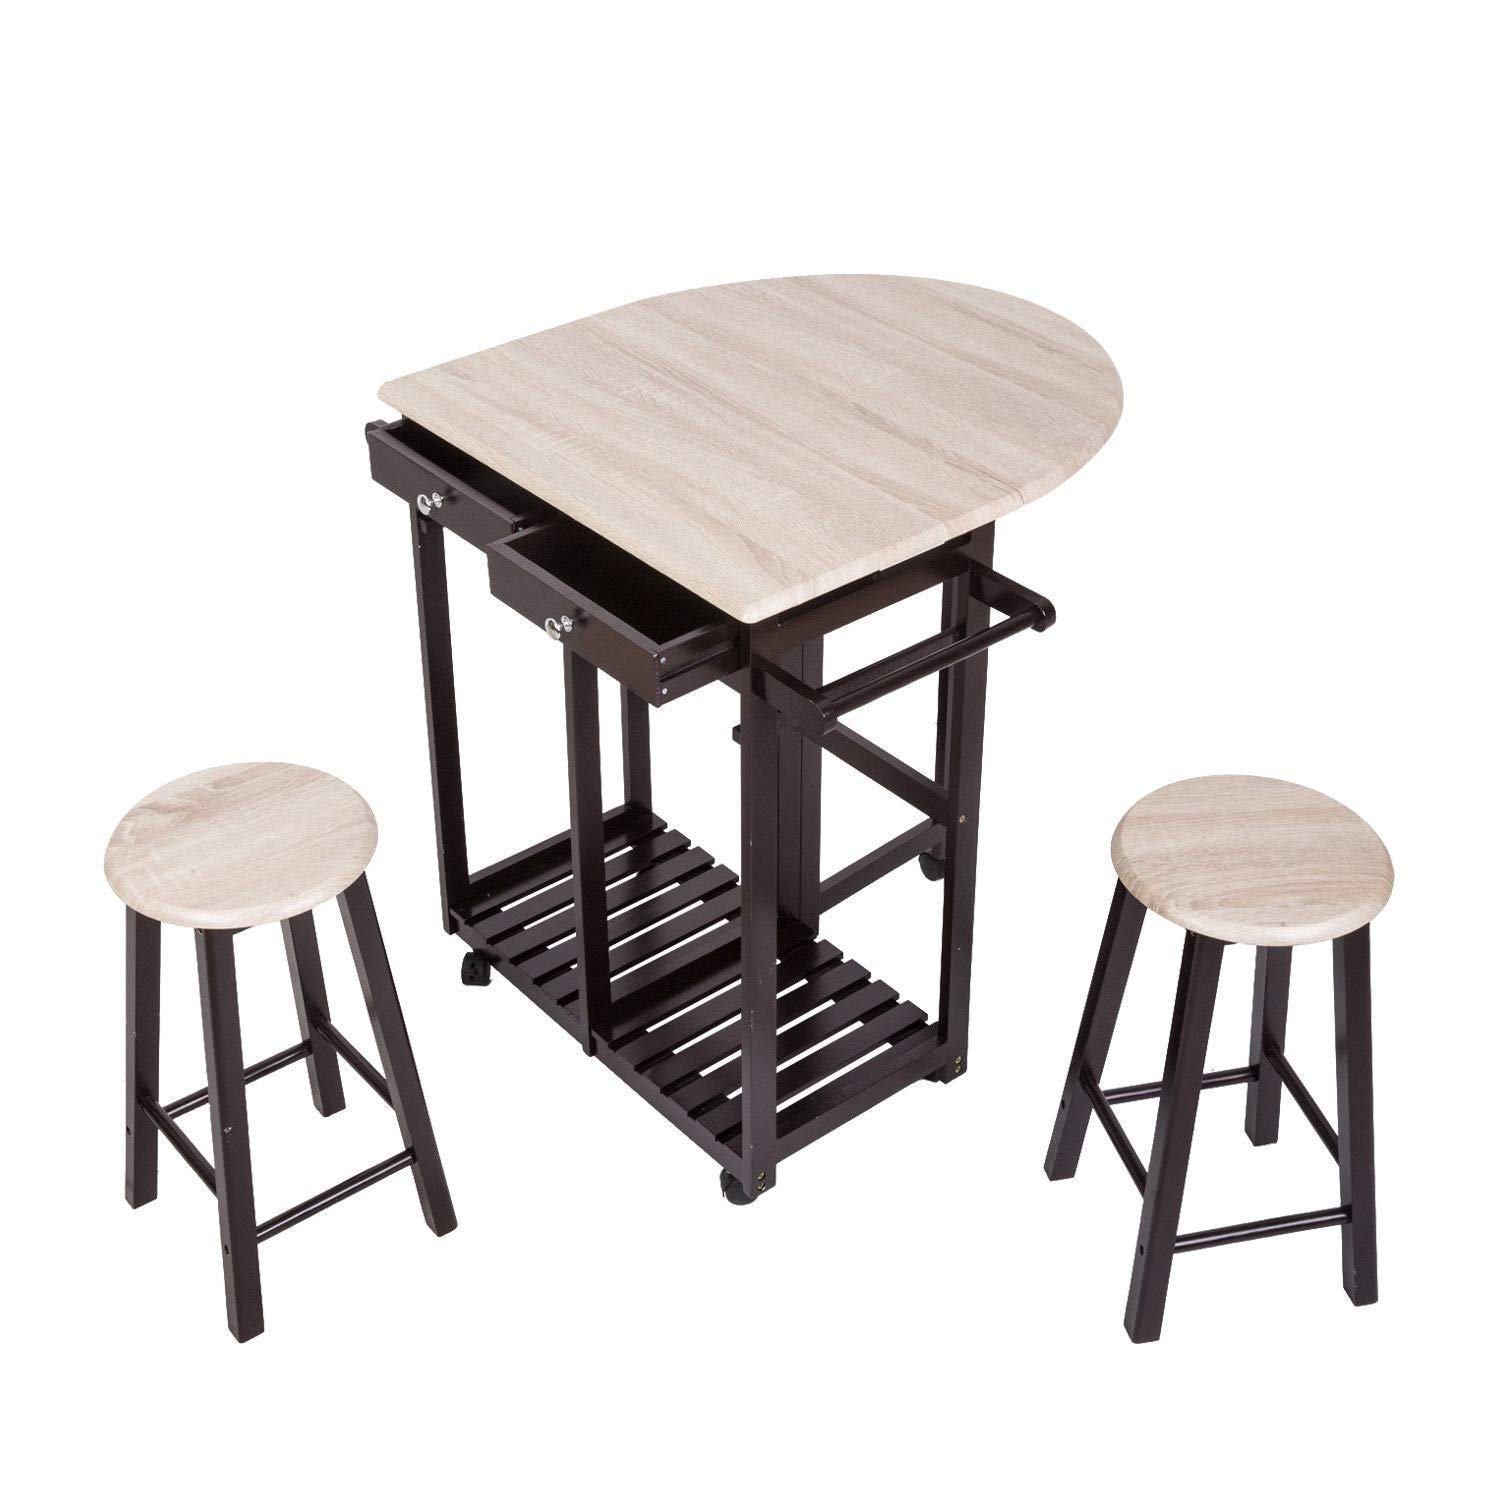 Asher Amada 3 PC Wood Breakfast Nook Dining Set Kitchen Island Rolling Cart Drop Leaf Table